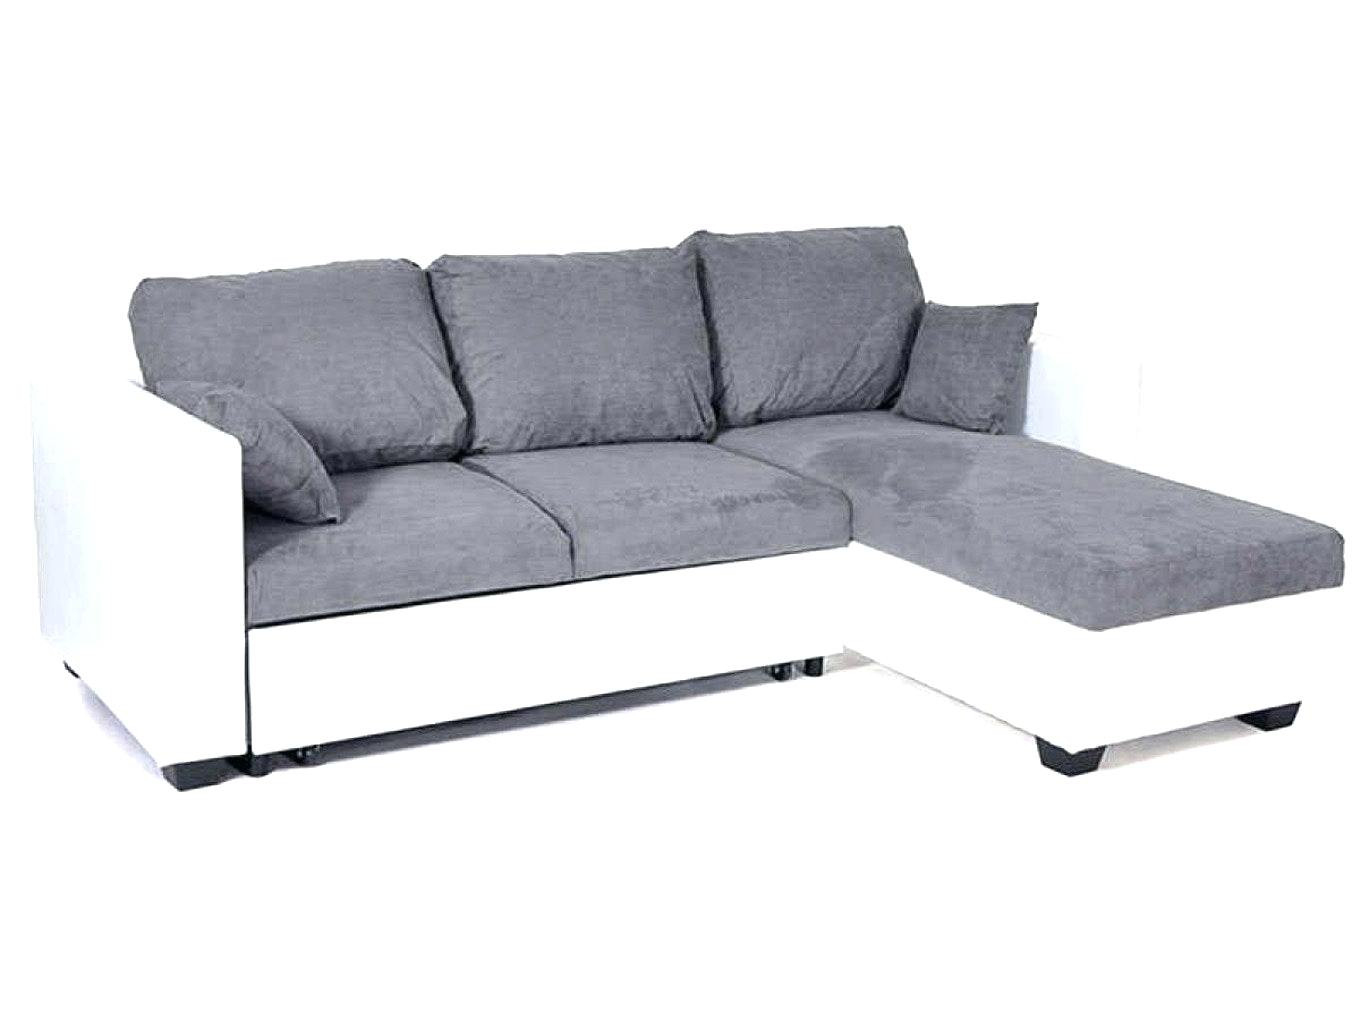 Canape Angle Cuir Fly Beau Photos Canap Convertible 3 Places Conforama 6 Cuir 1 Avec S Et Full